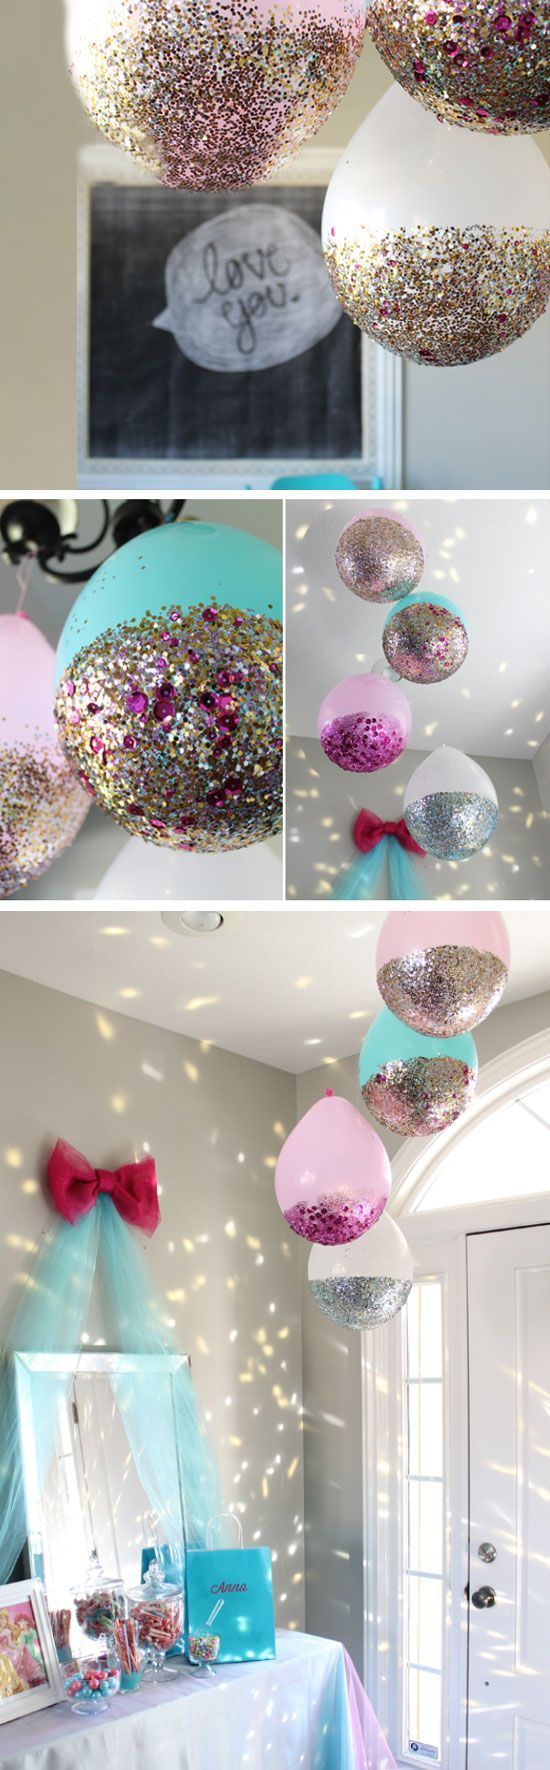 DIY Glitter Balloons! Fun way to decorate gatherings and any special occasions! #diyglitterballoons #funglitterballoons #glitterballoonsdiy